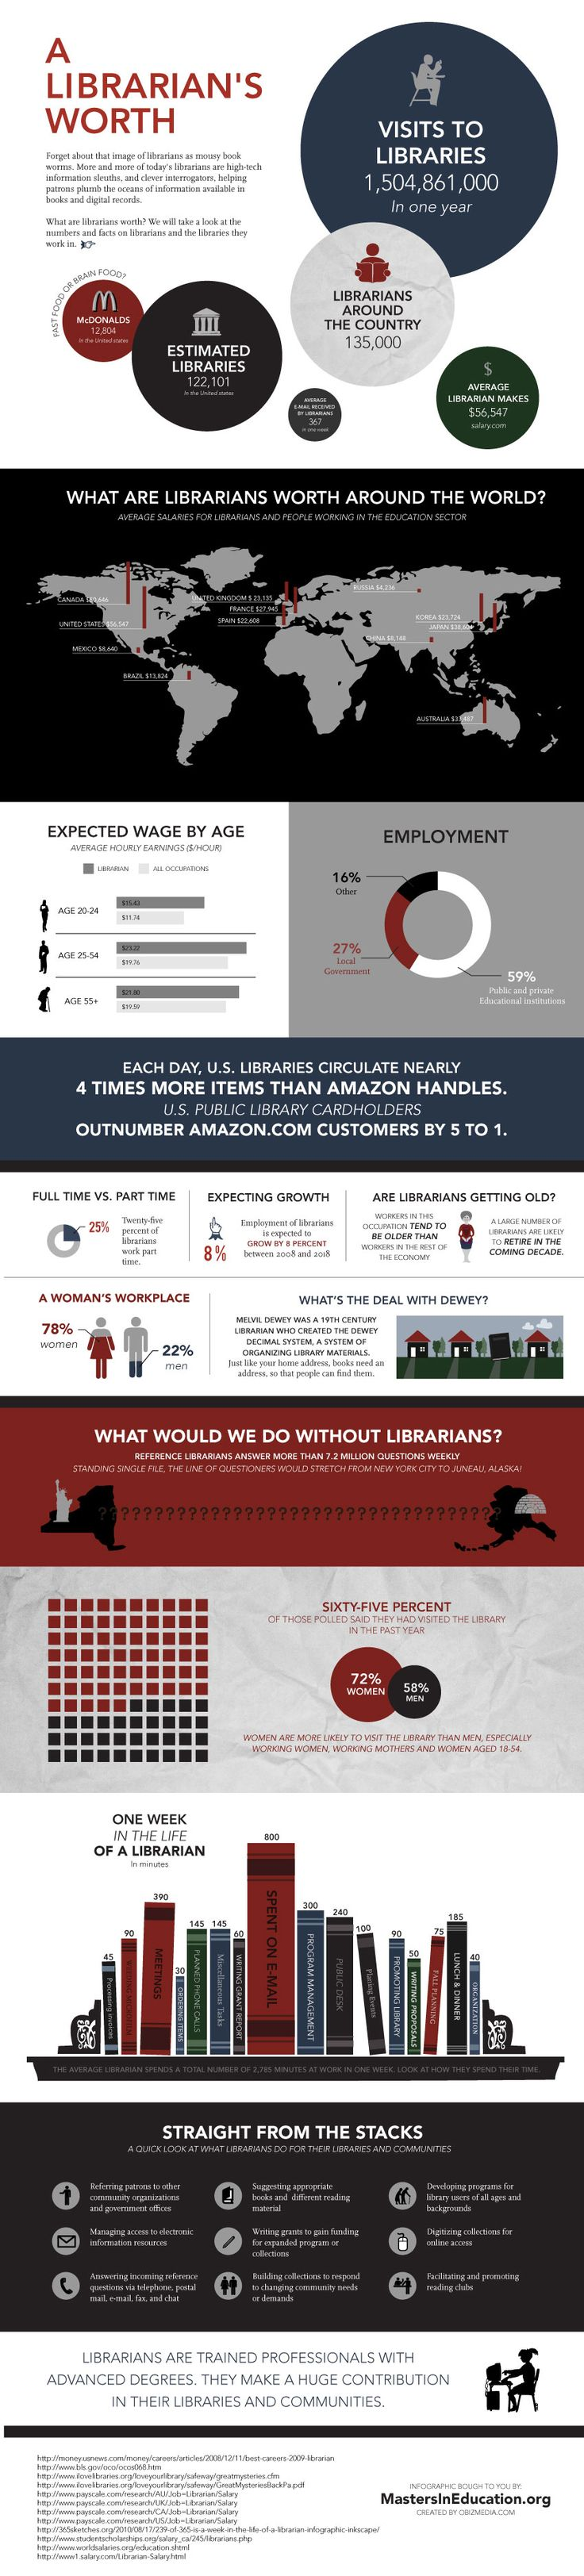 Worth of librarians infographic